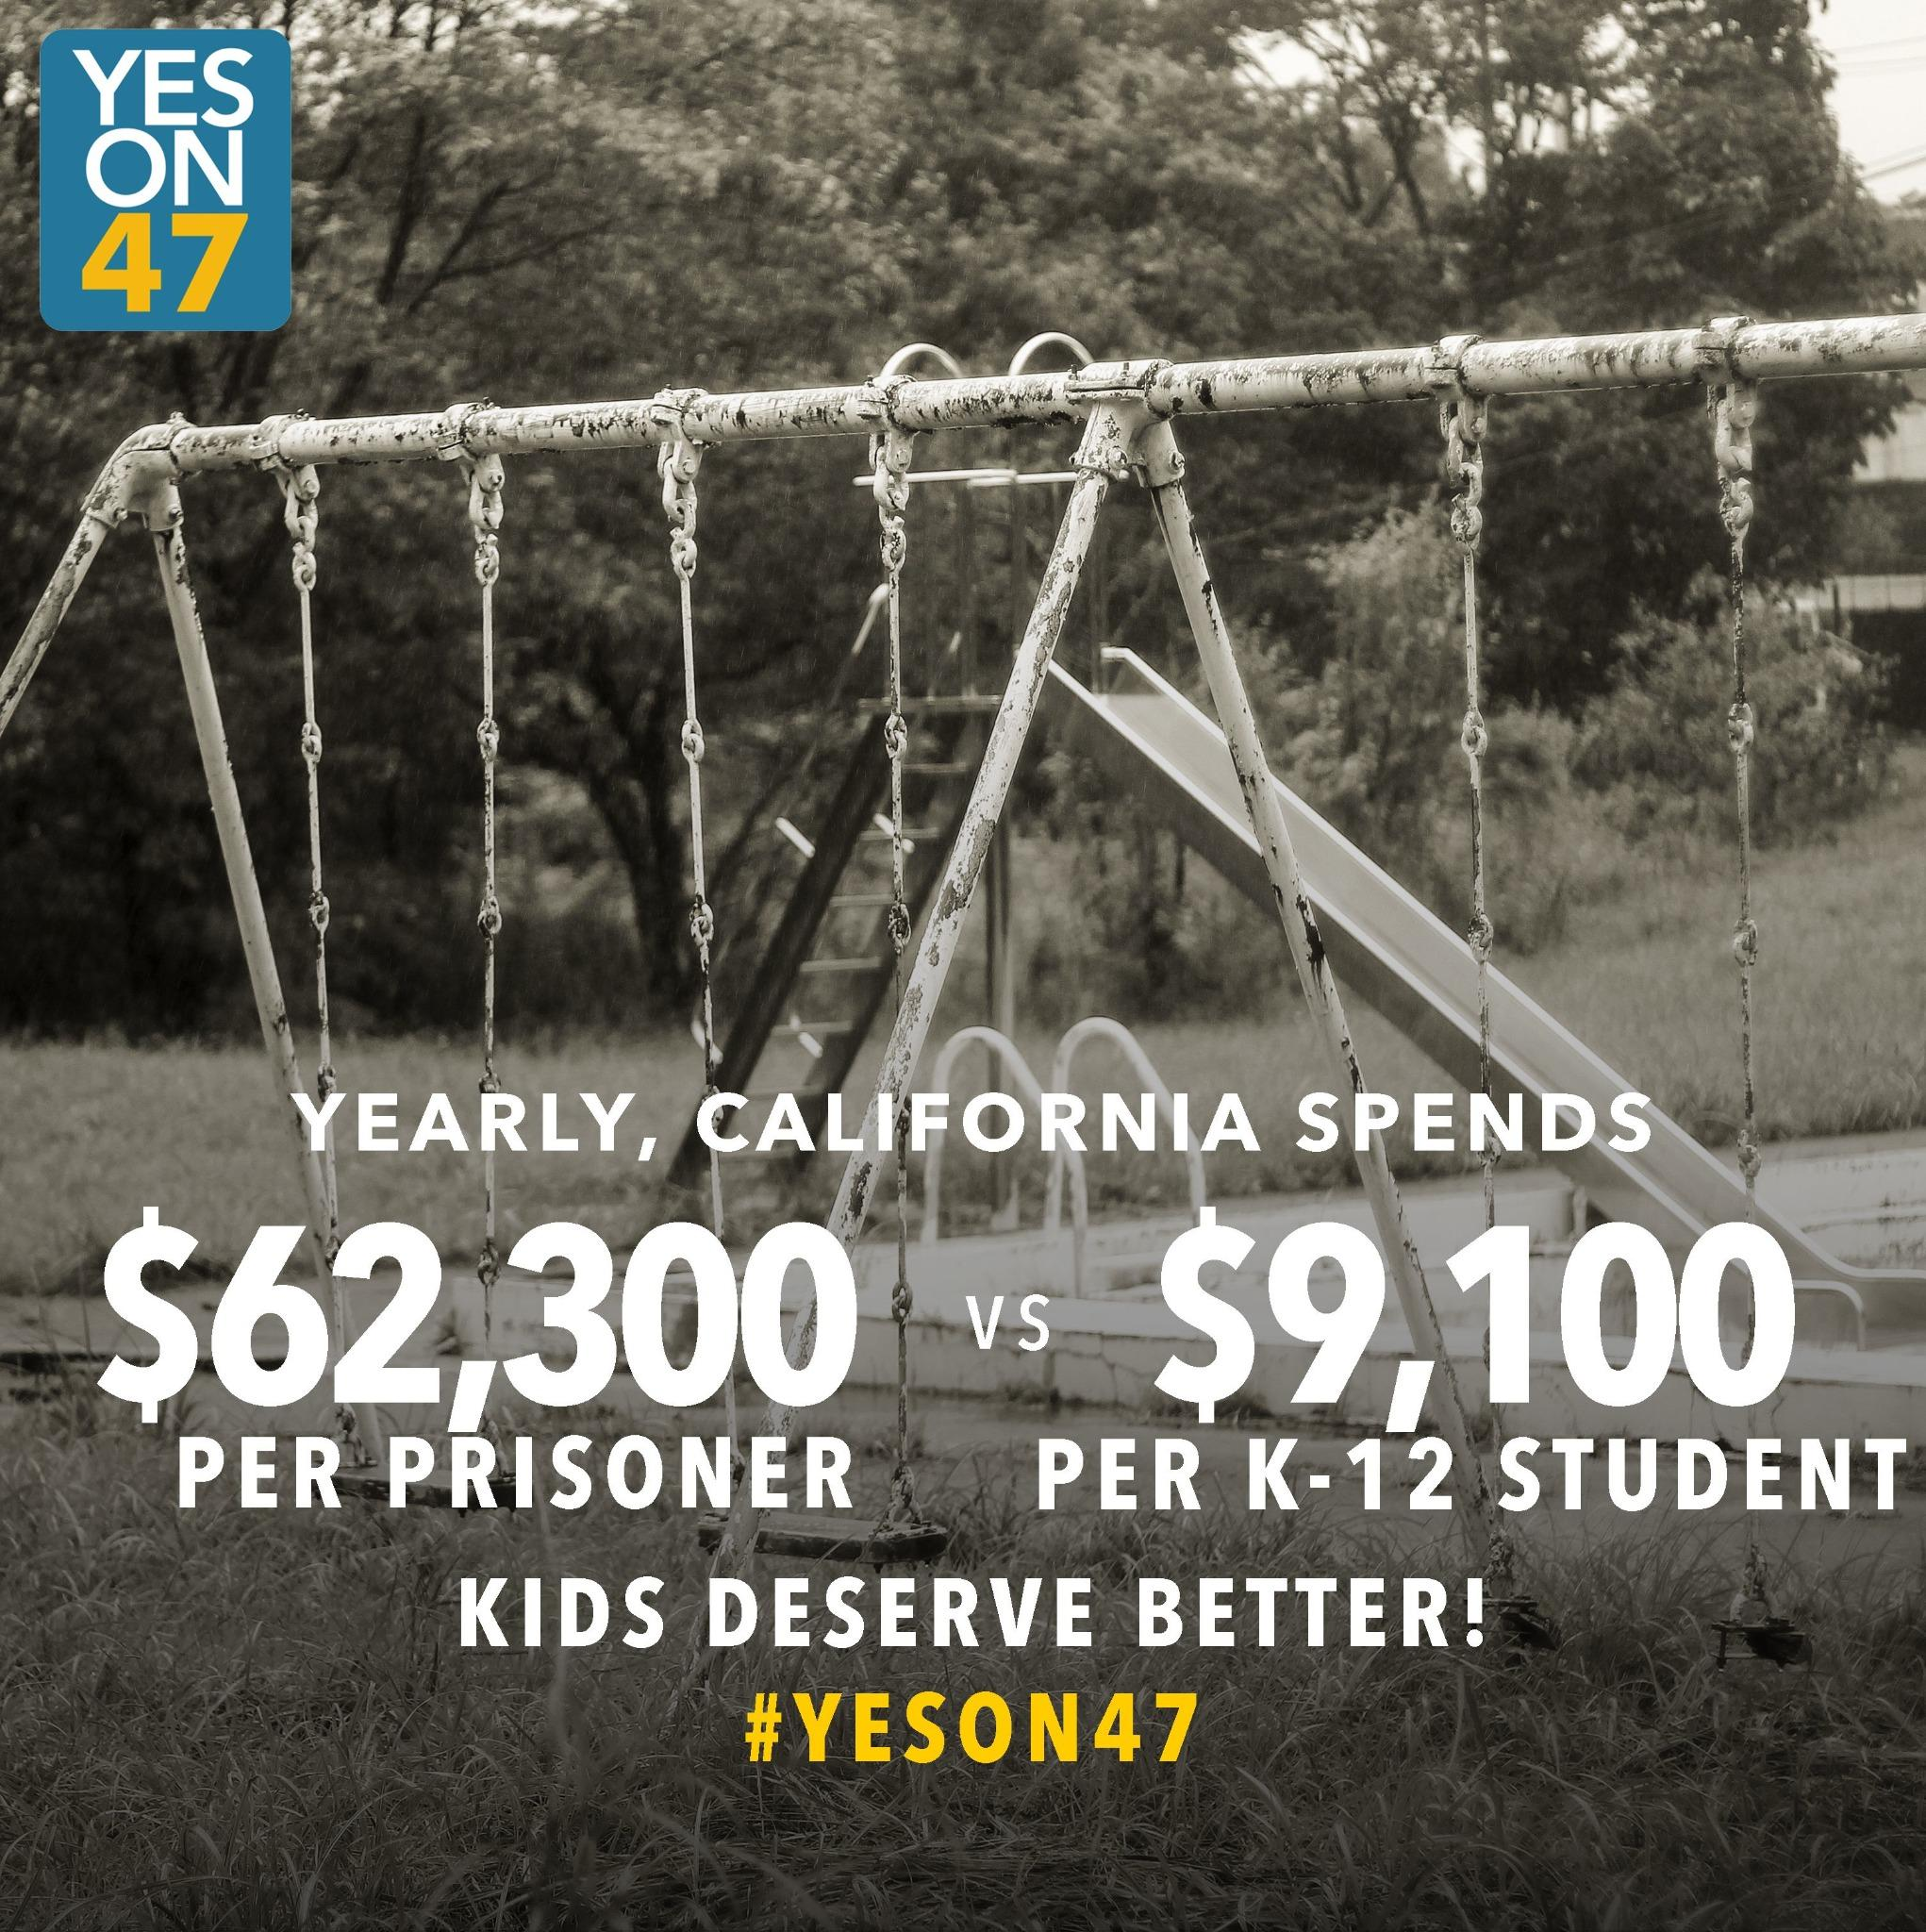 Yearly, California spends $62,300 per prisoner, and only $9,100 per K-12 student. Kids deserve better! VOTE #YesOn47 http://t.co/W4p7Jox6iW